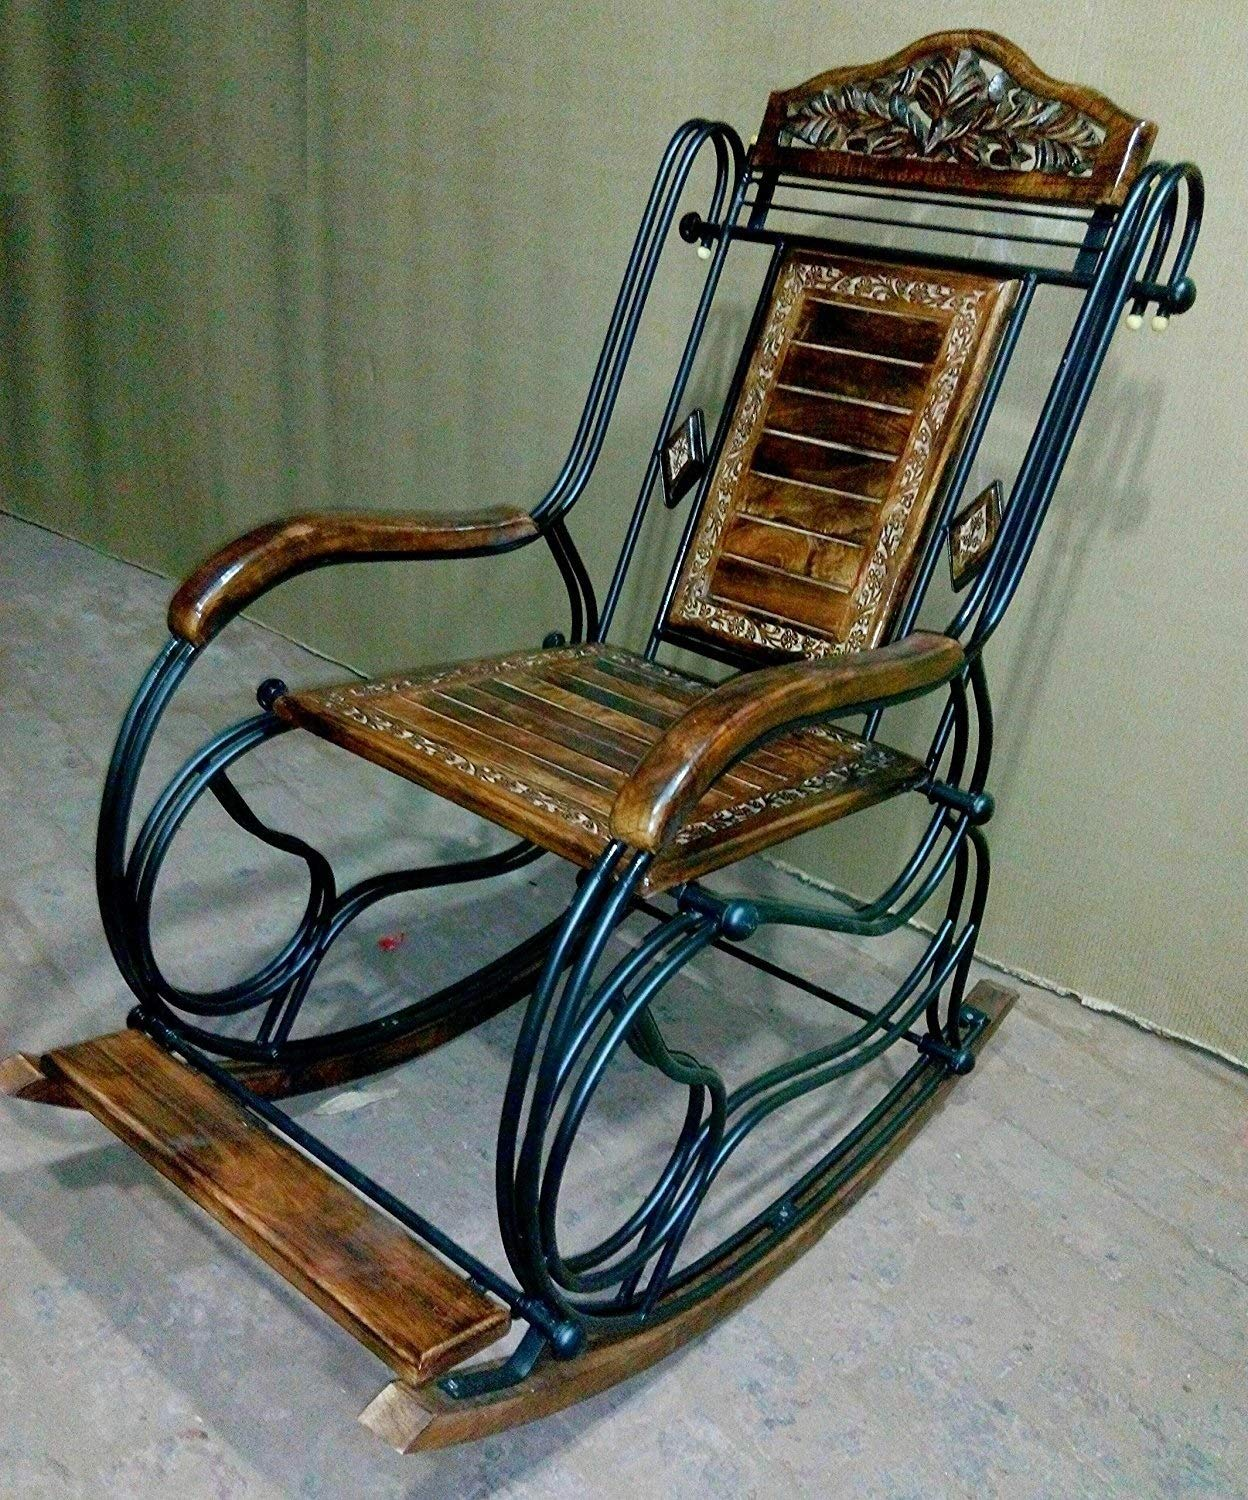 Margot Wooden & Iron Rocking Chair for Grand Parents Black Rocking Chairs Adult Patio Carved Vintage Outdoor Indoor